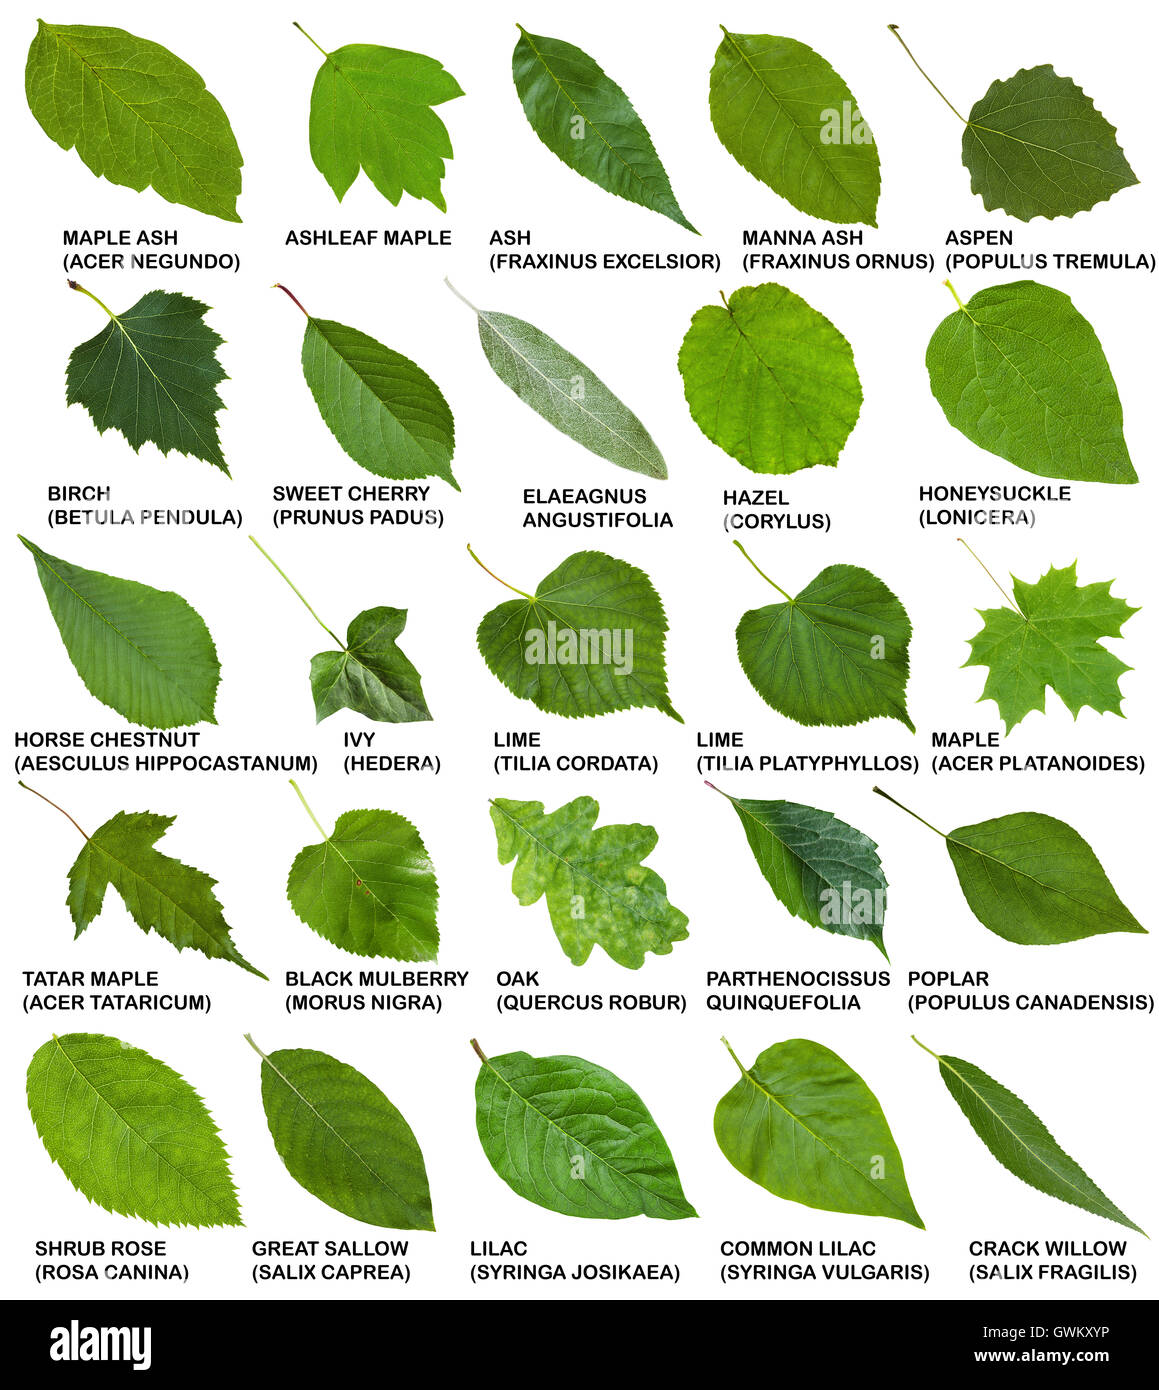 Green Leaves Of Trees And Shrubs With Names Isolated On